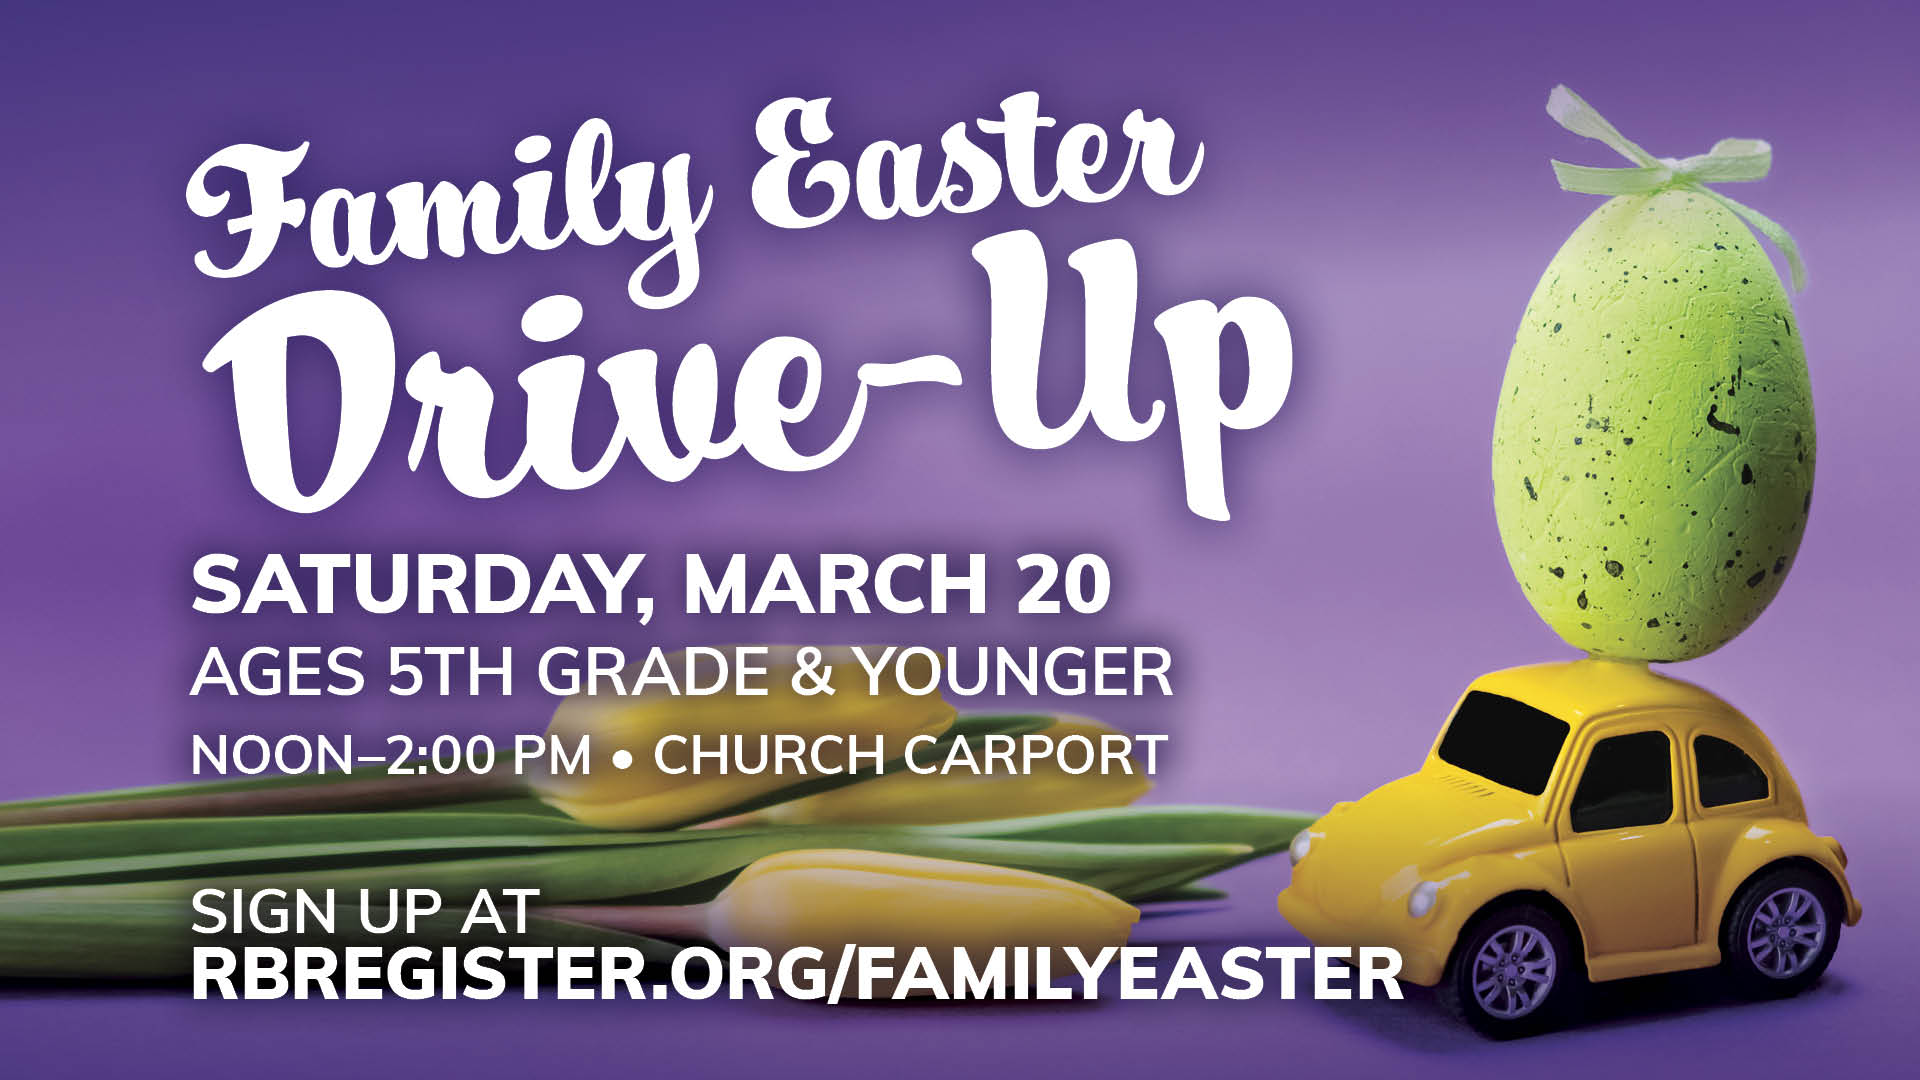 Family Easter Drive-Up